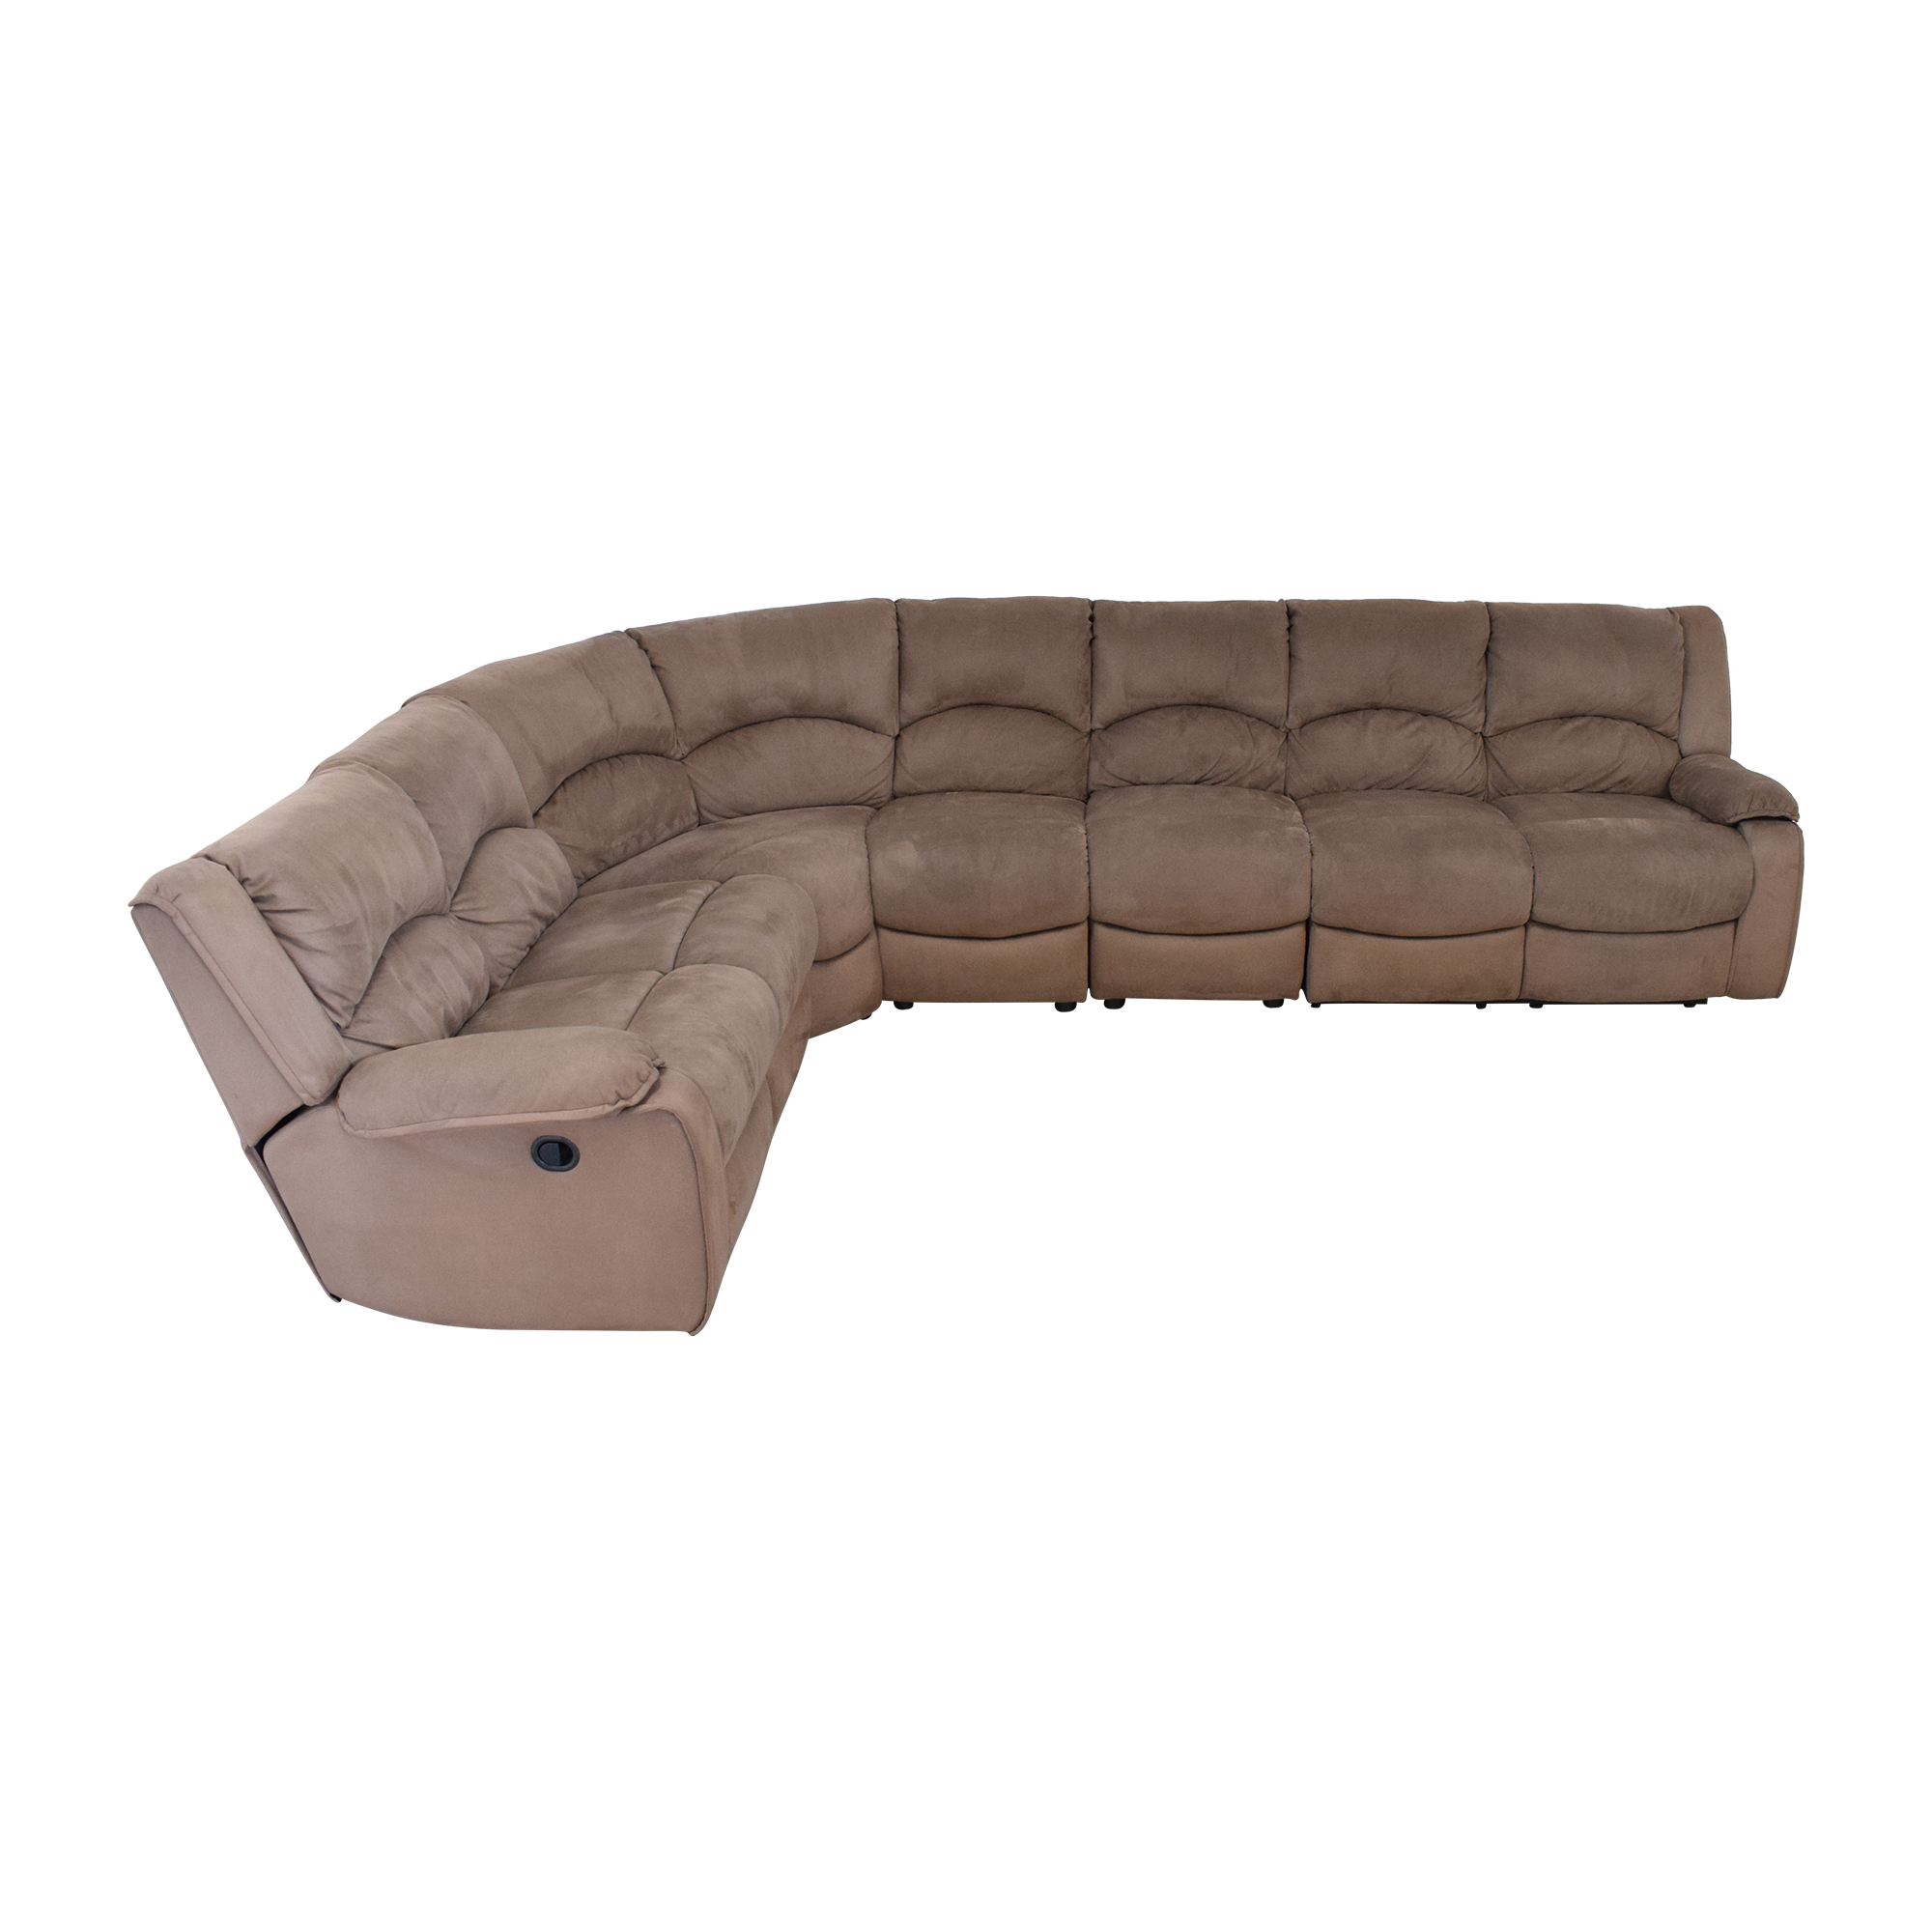 Raymour & Flanigan Raymour & Flanigan Sectional Sofa with Recliners second hand